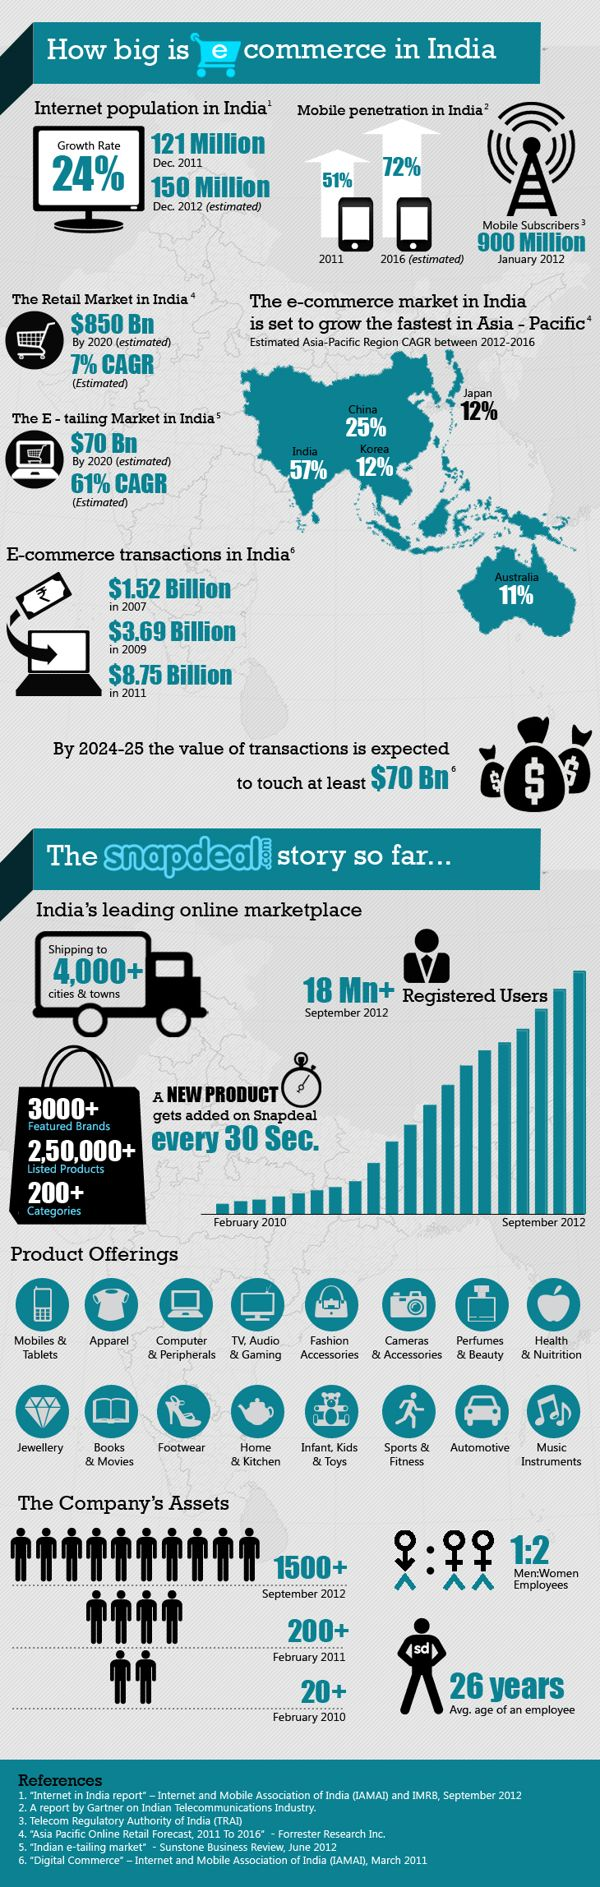 How big is ecommerce in India #infographic